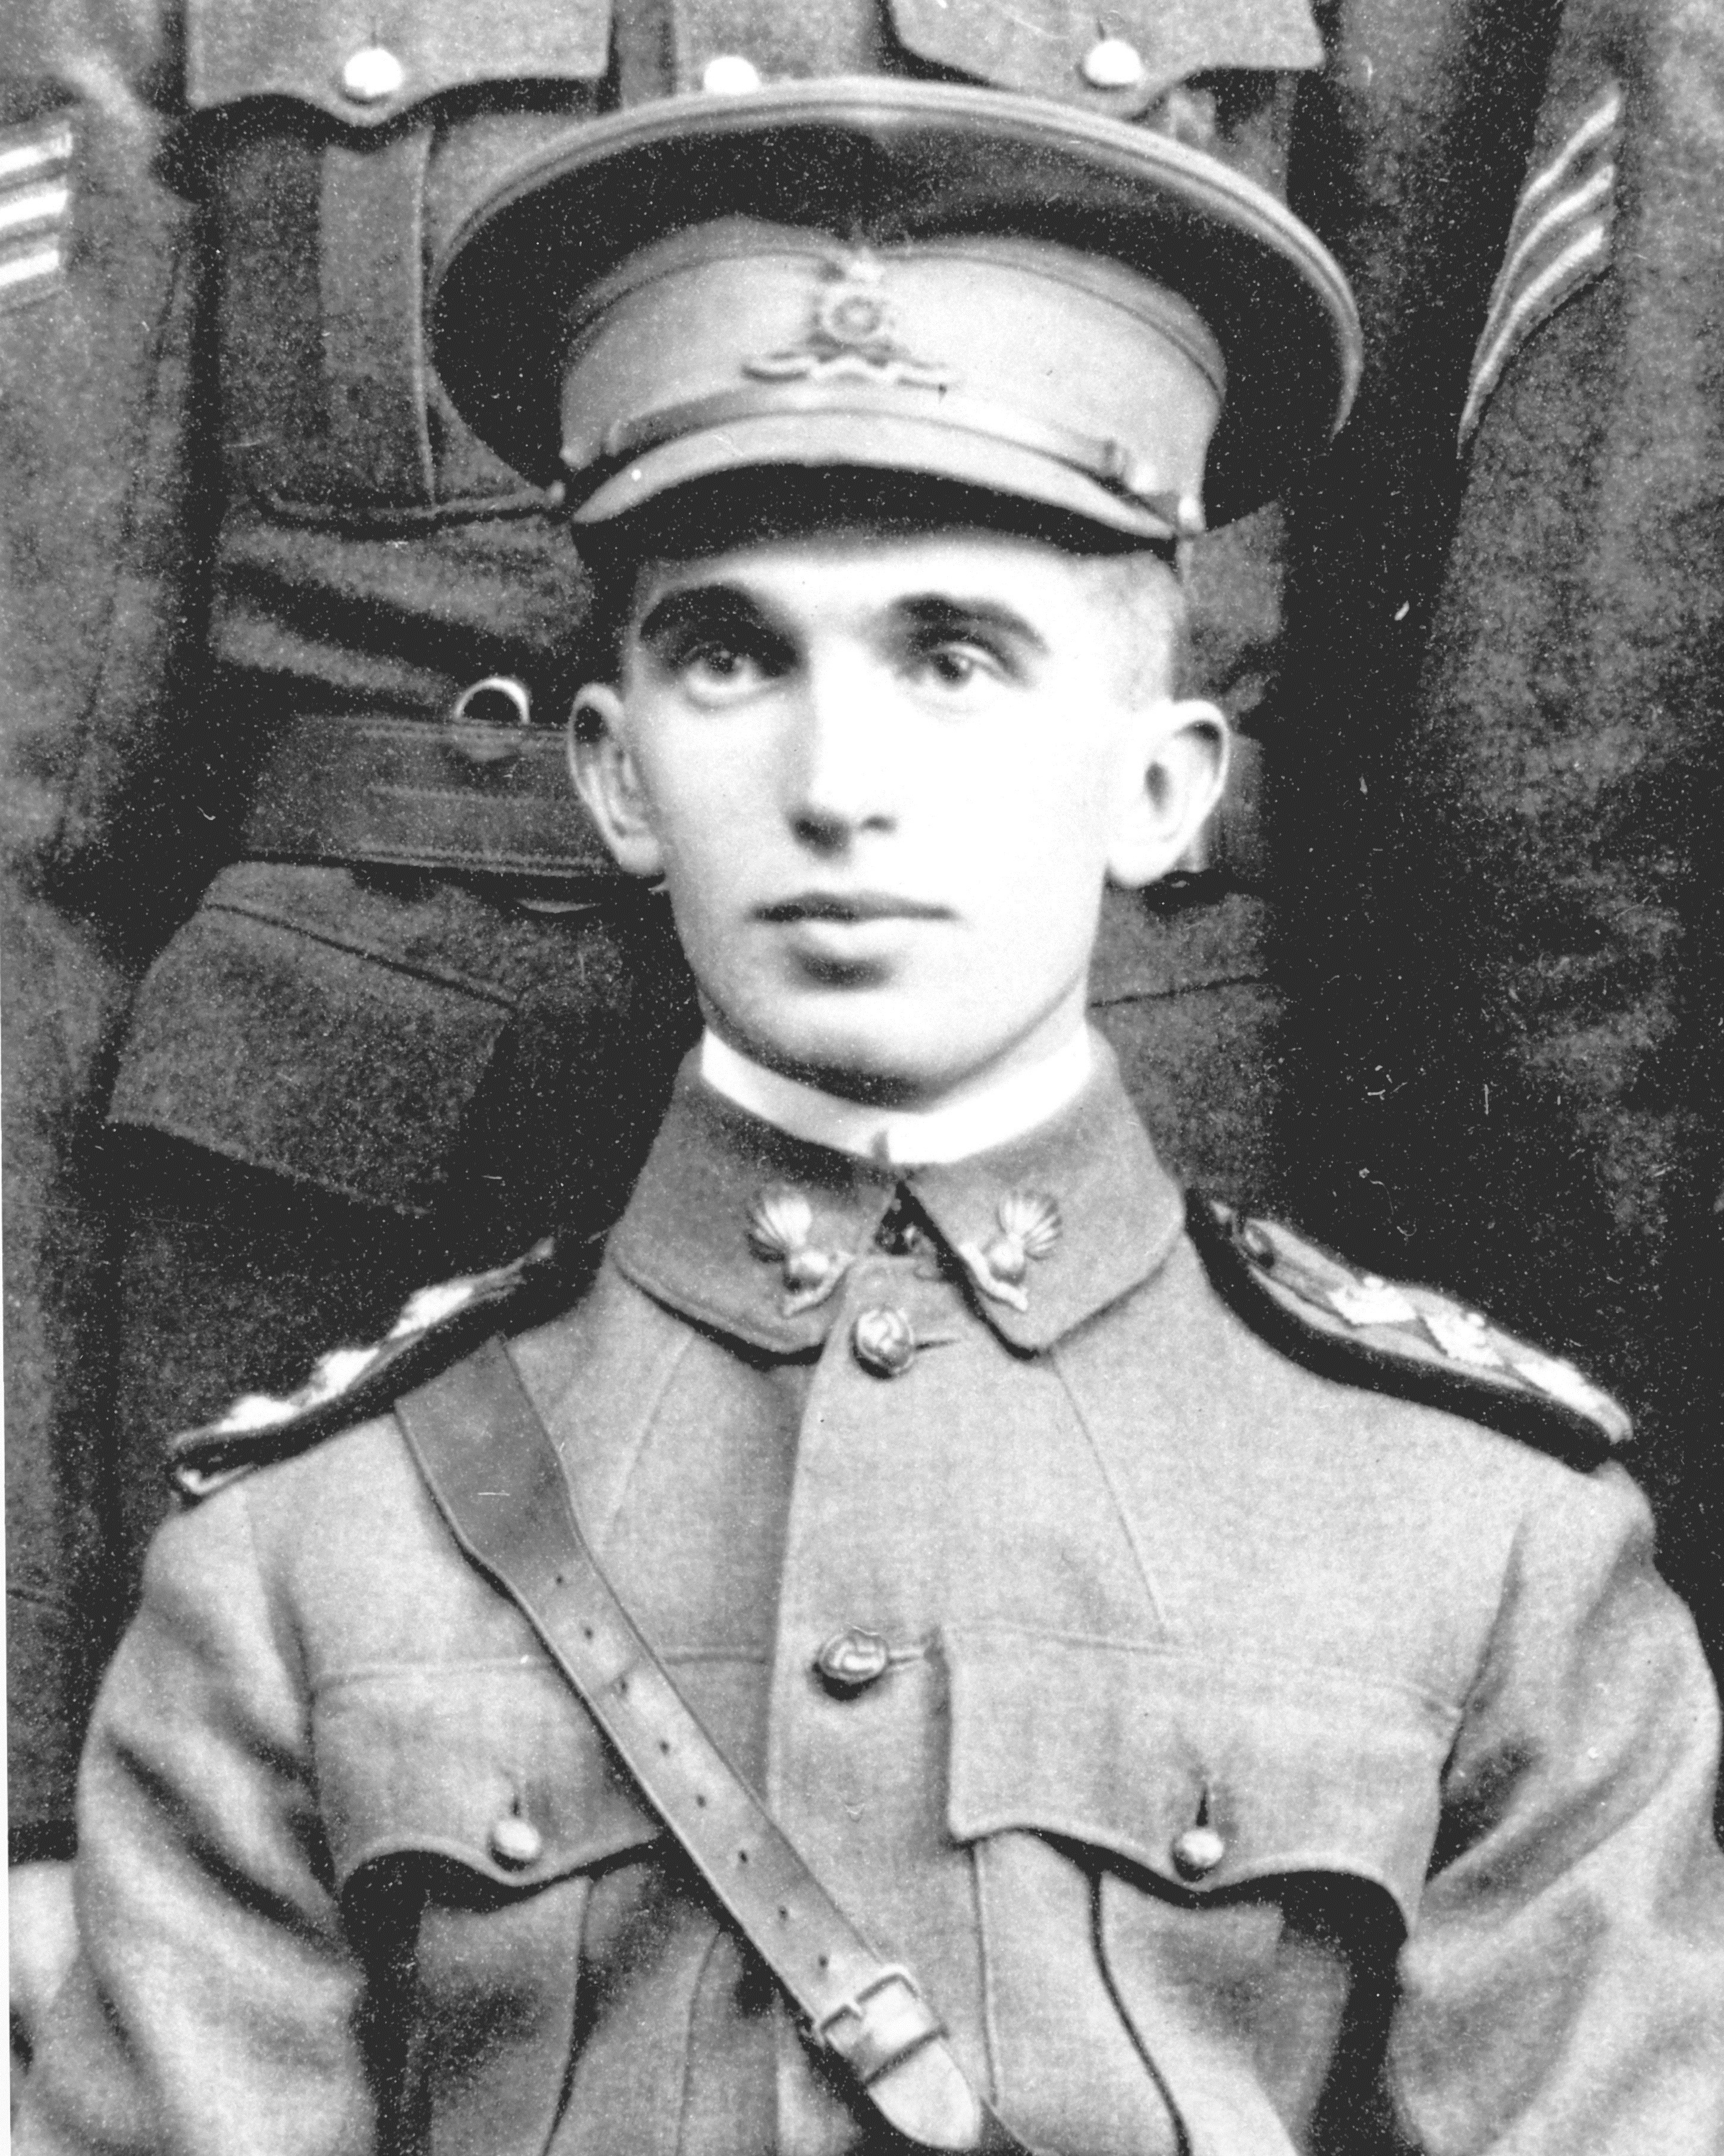 Lt. Alexis Helmer was a close friend of McCrae's whose death inspired In Flanders Fields. (McGill University Archives PL 006 409)